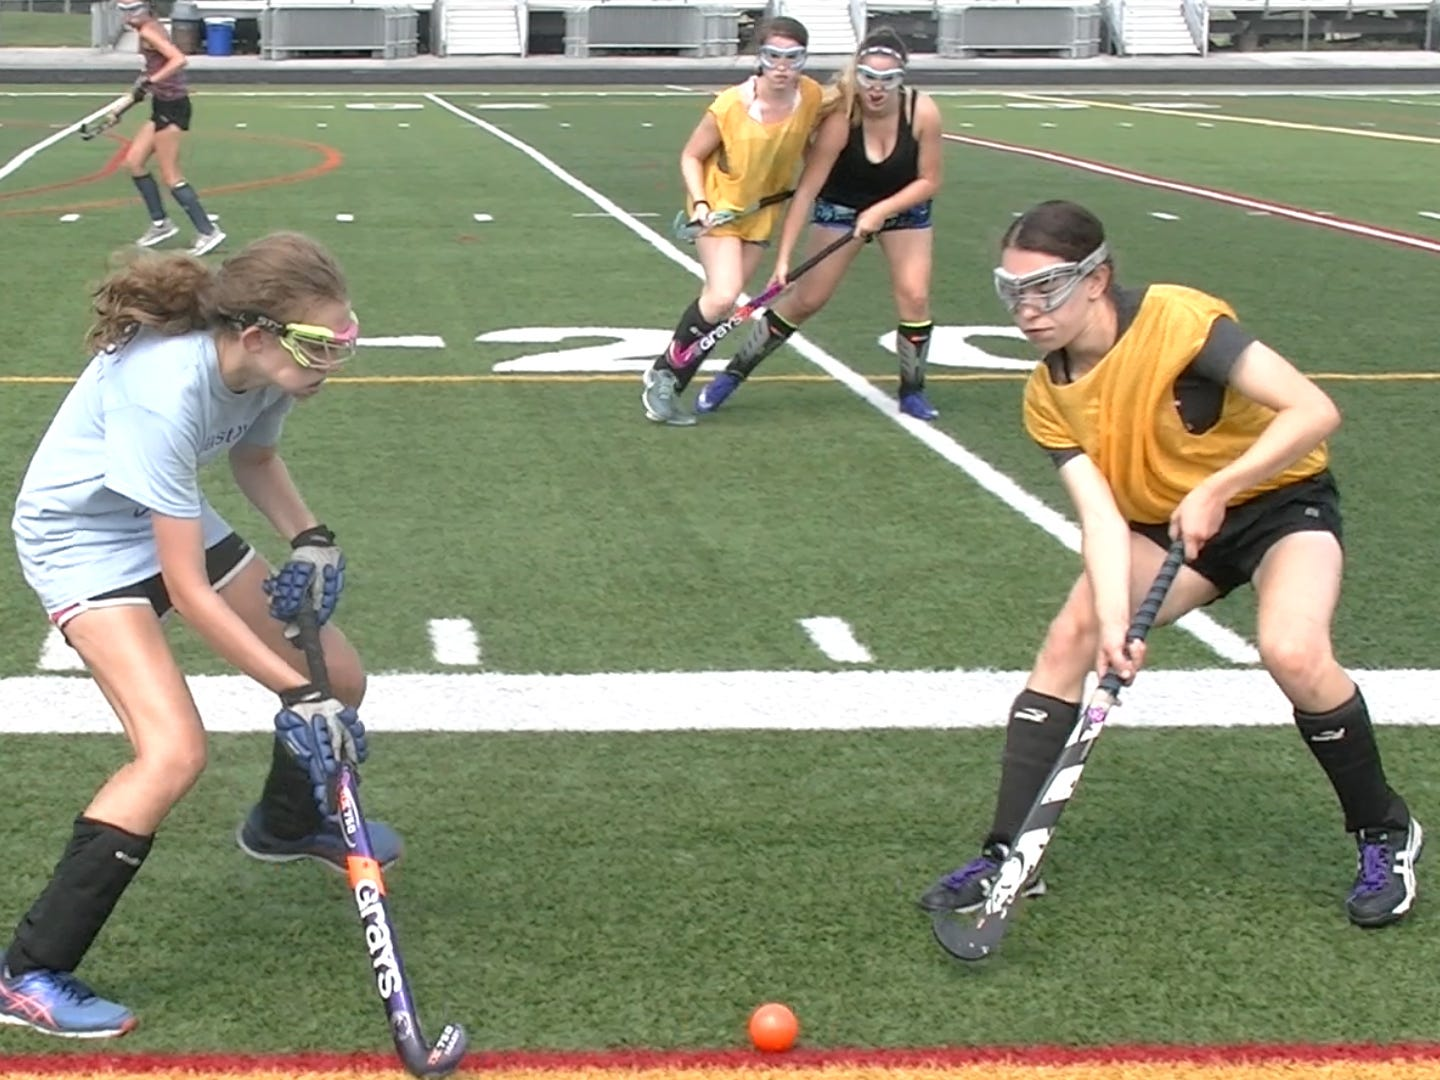 Members of Dallastown's field hockey team scrimmage on the first day of fall practice Monday, Aug. 13, 2018.